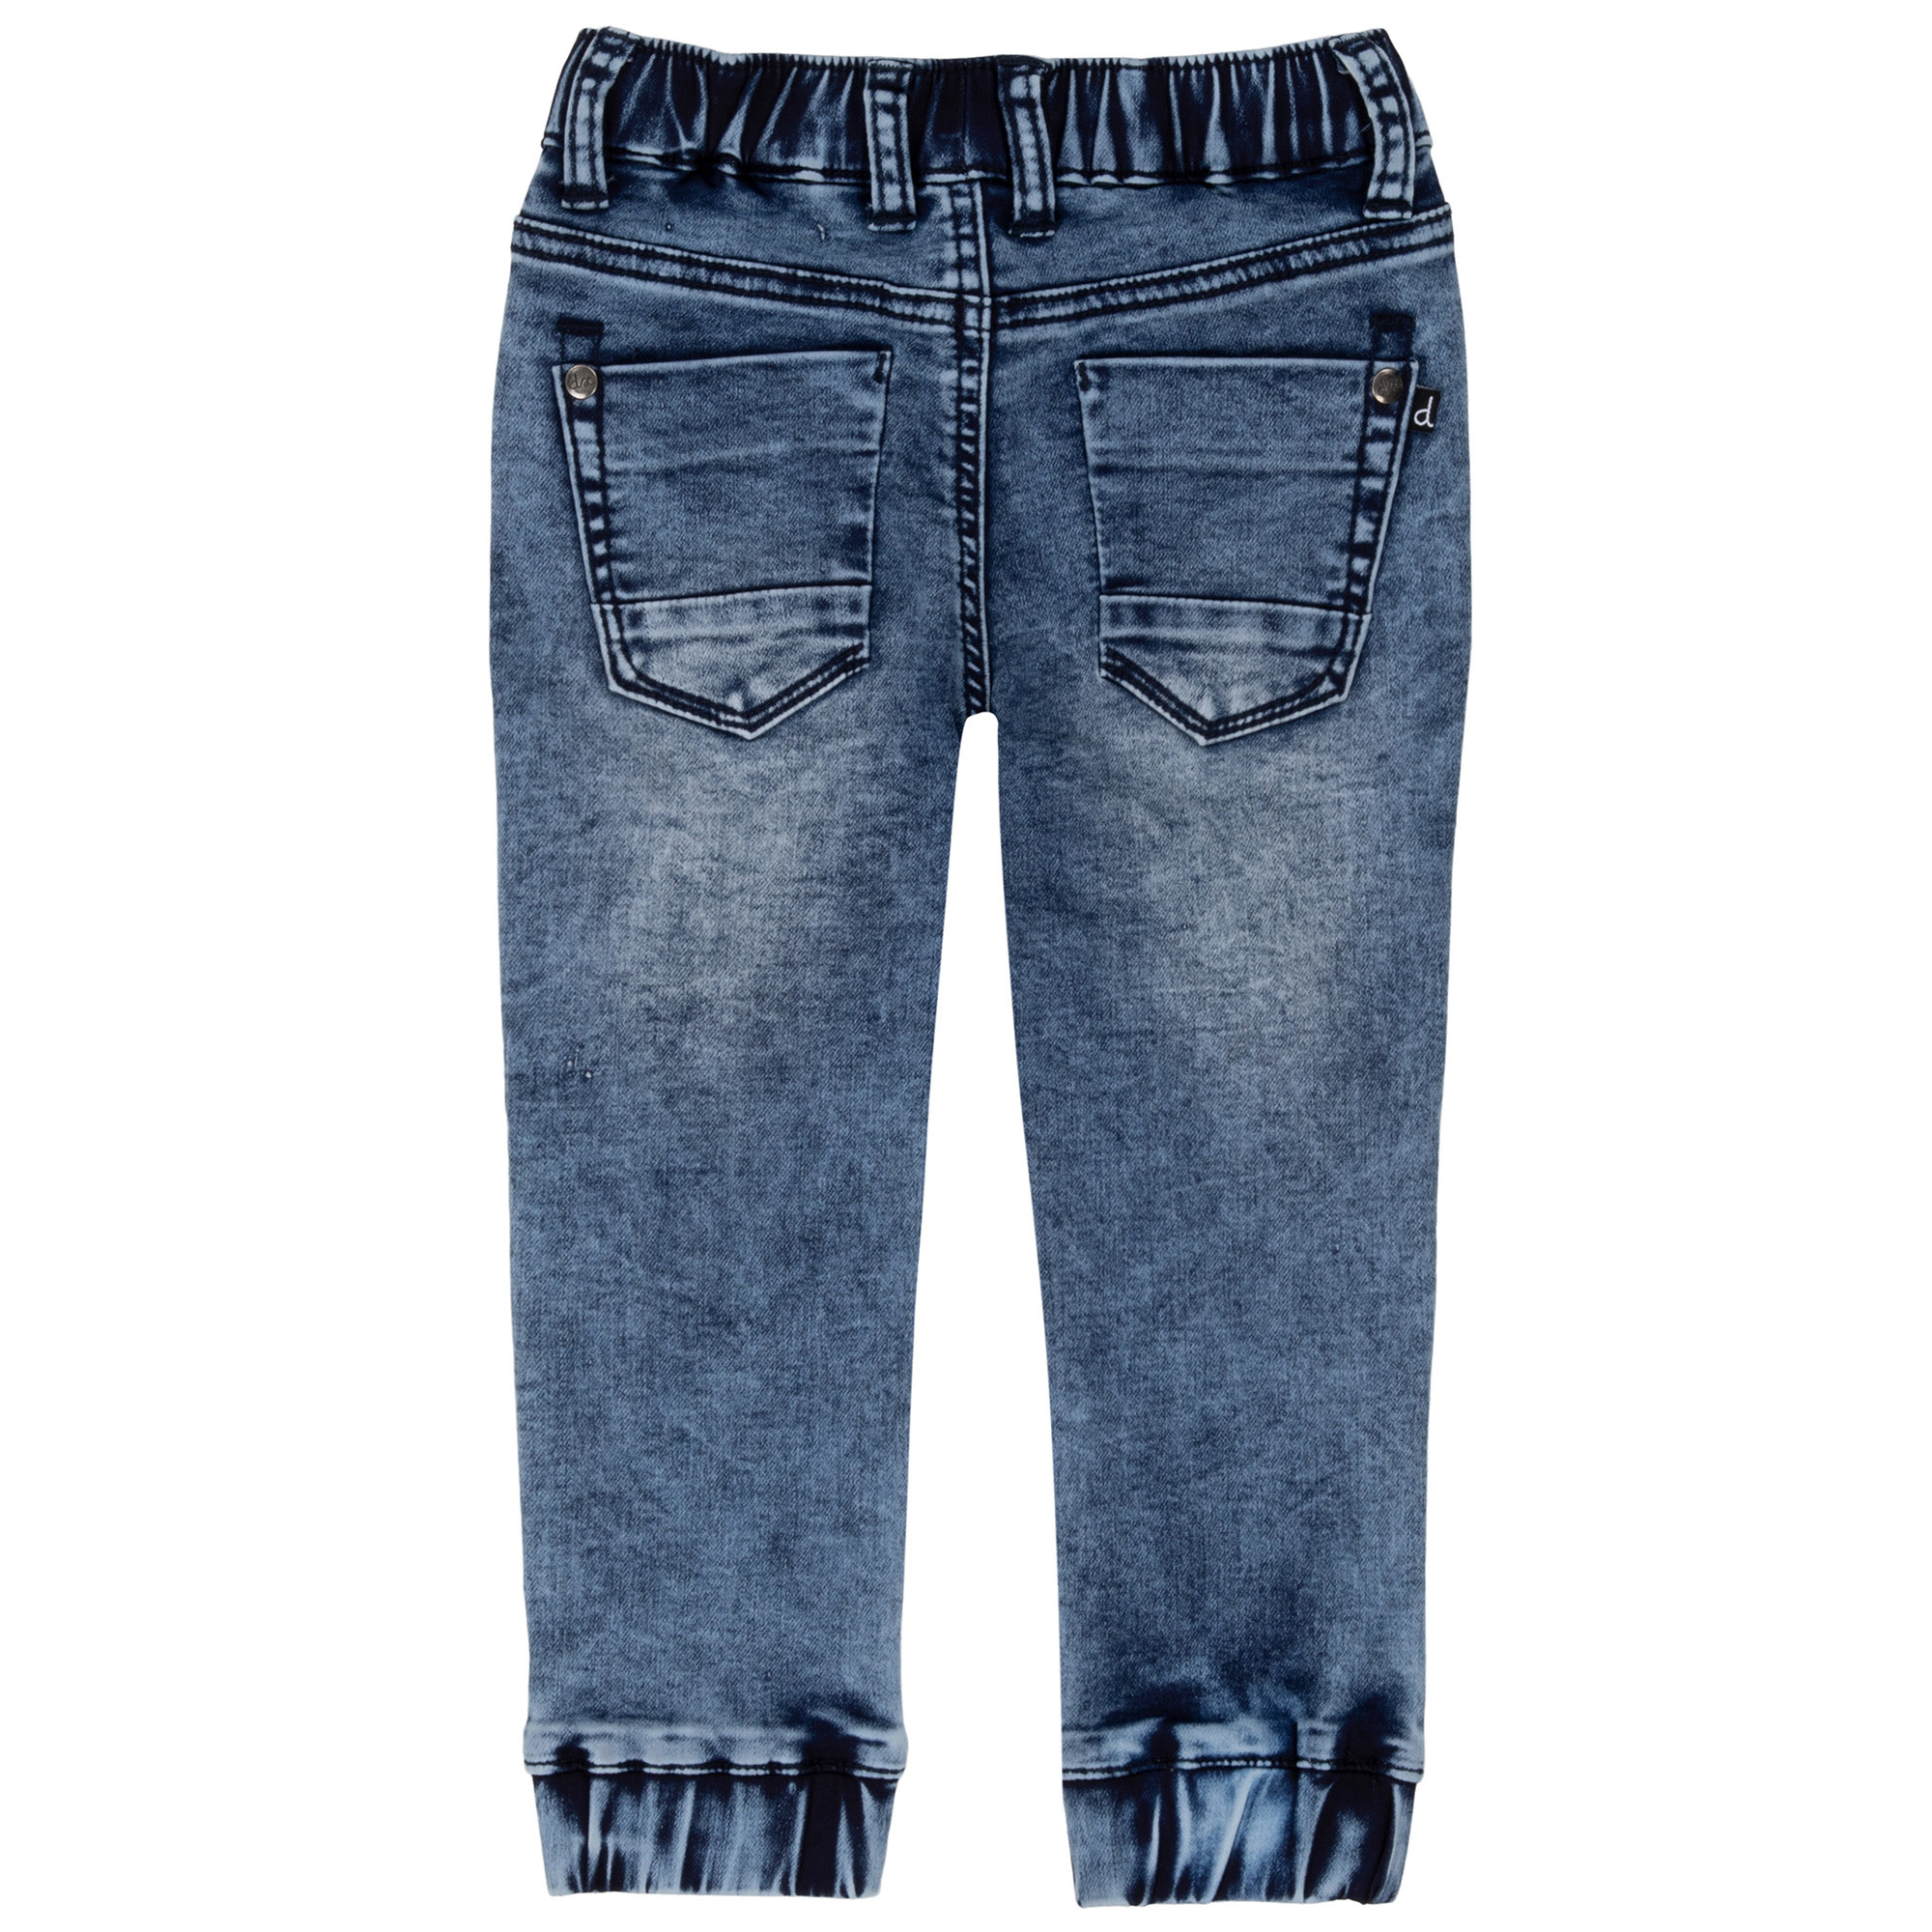 French Terry Denim Jogger